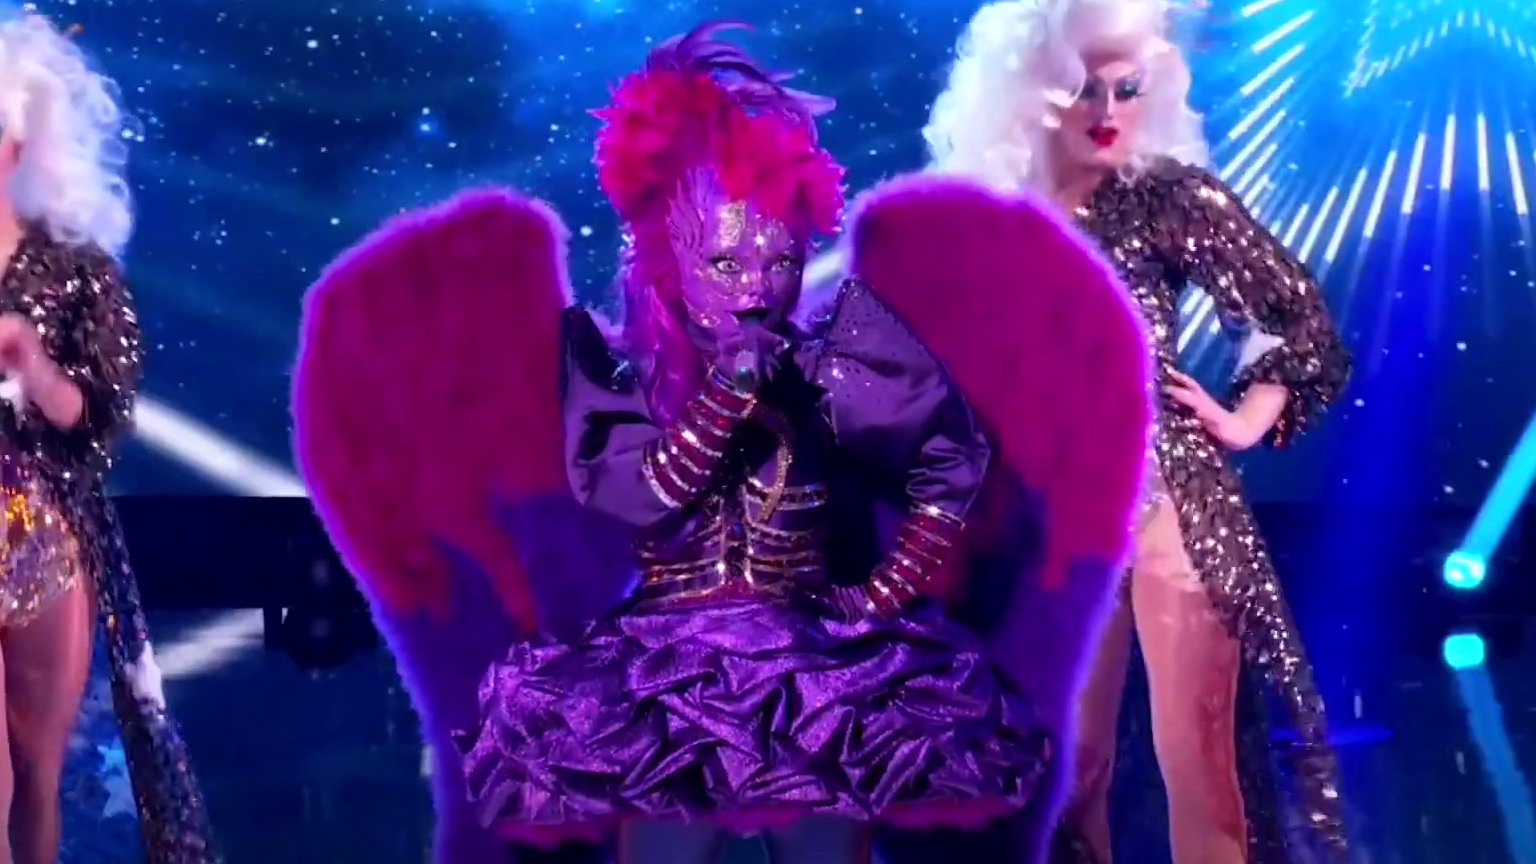 The Masked Singer: Night Angel Performs Man! I Feel Like A Woman!